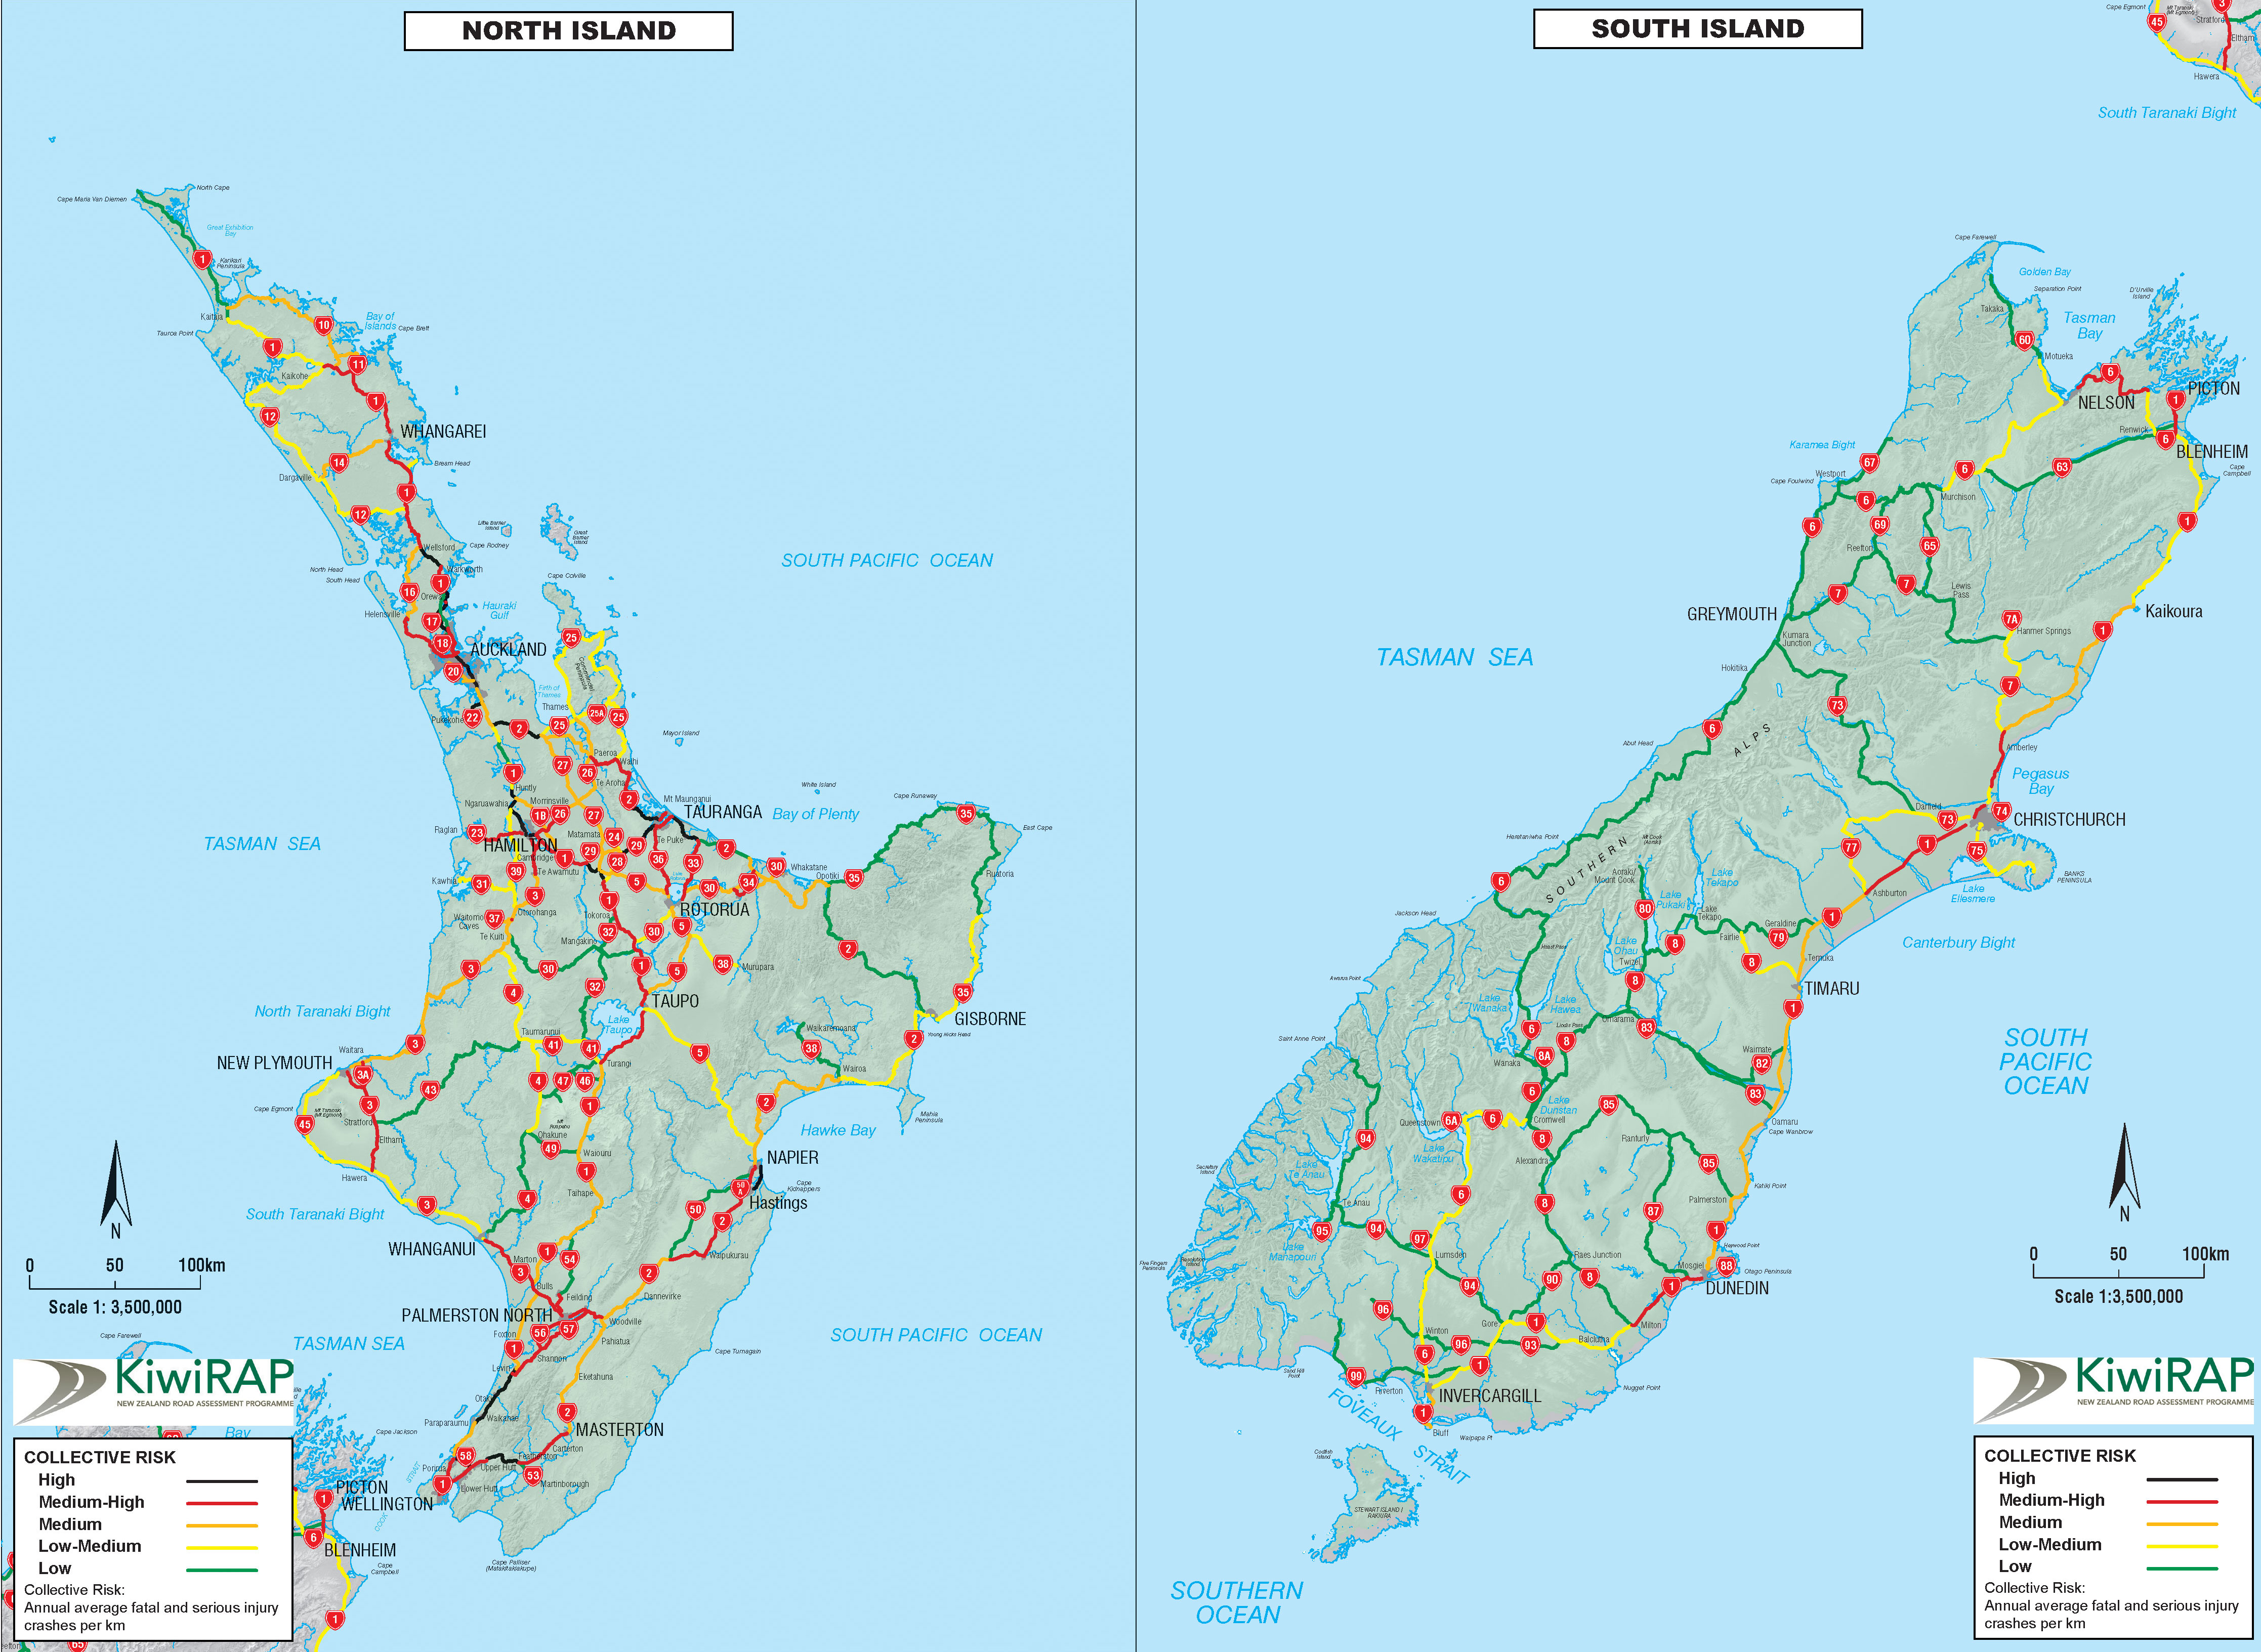 New Zealand Highway Map.Download Risk Maps Star Rating And Performance Tracking Reports